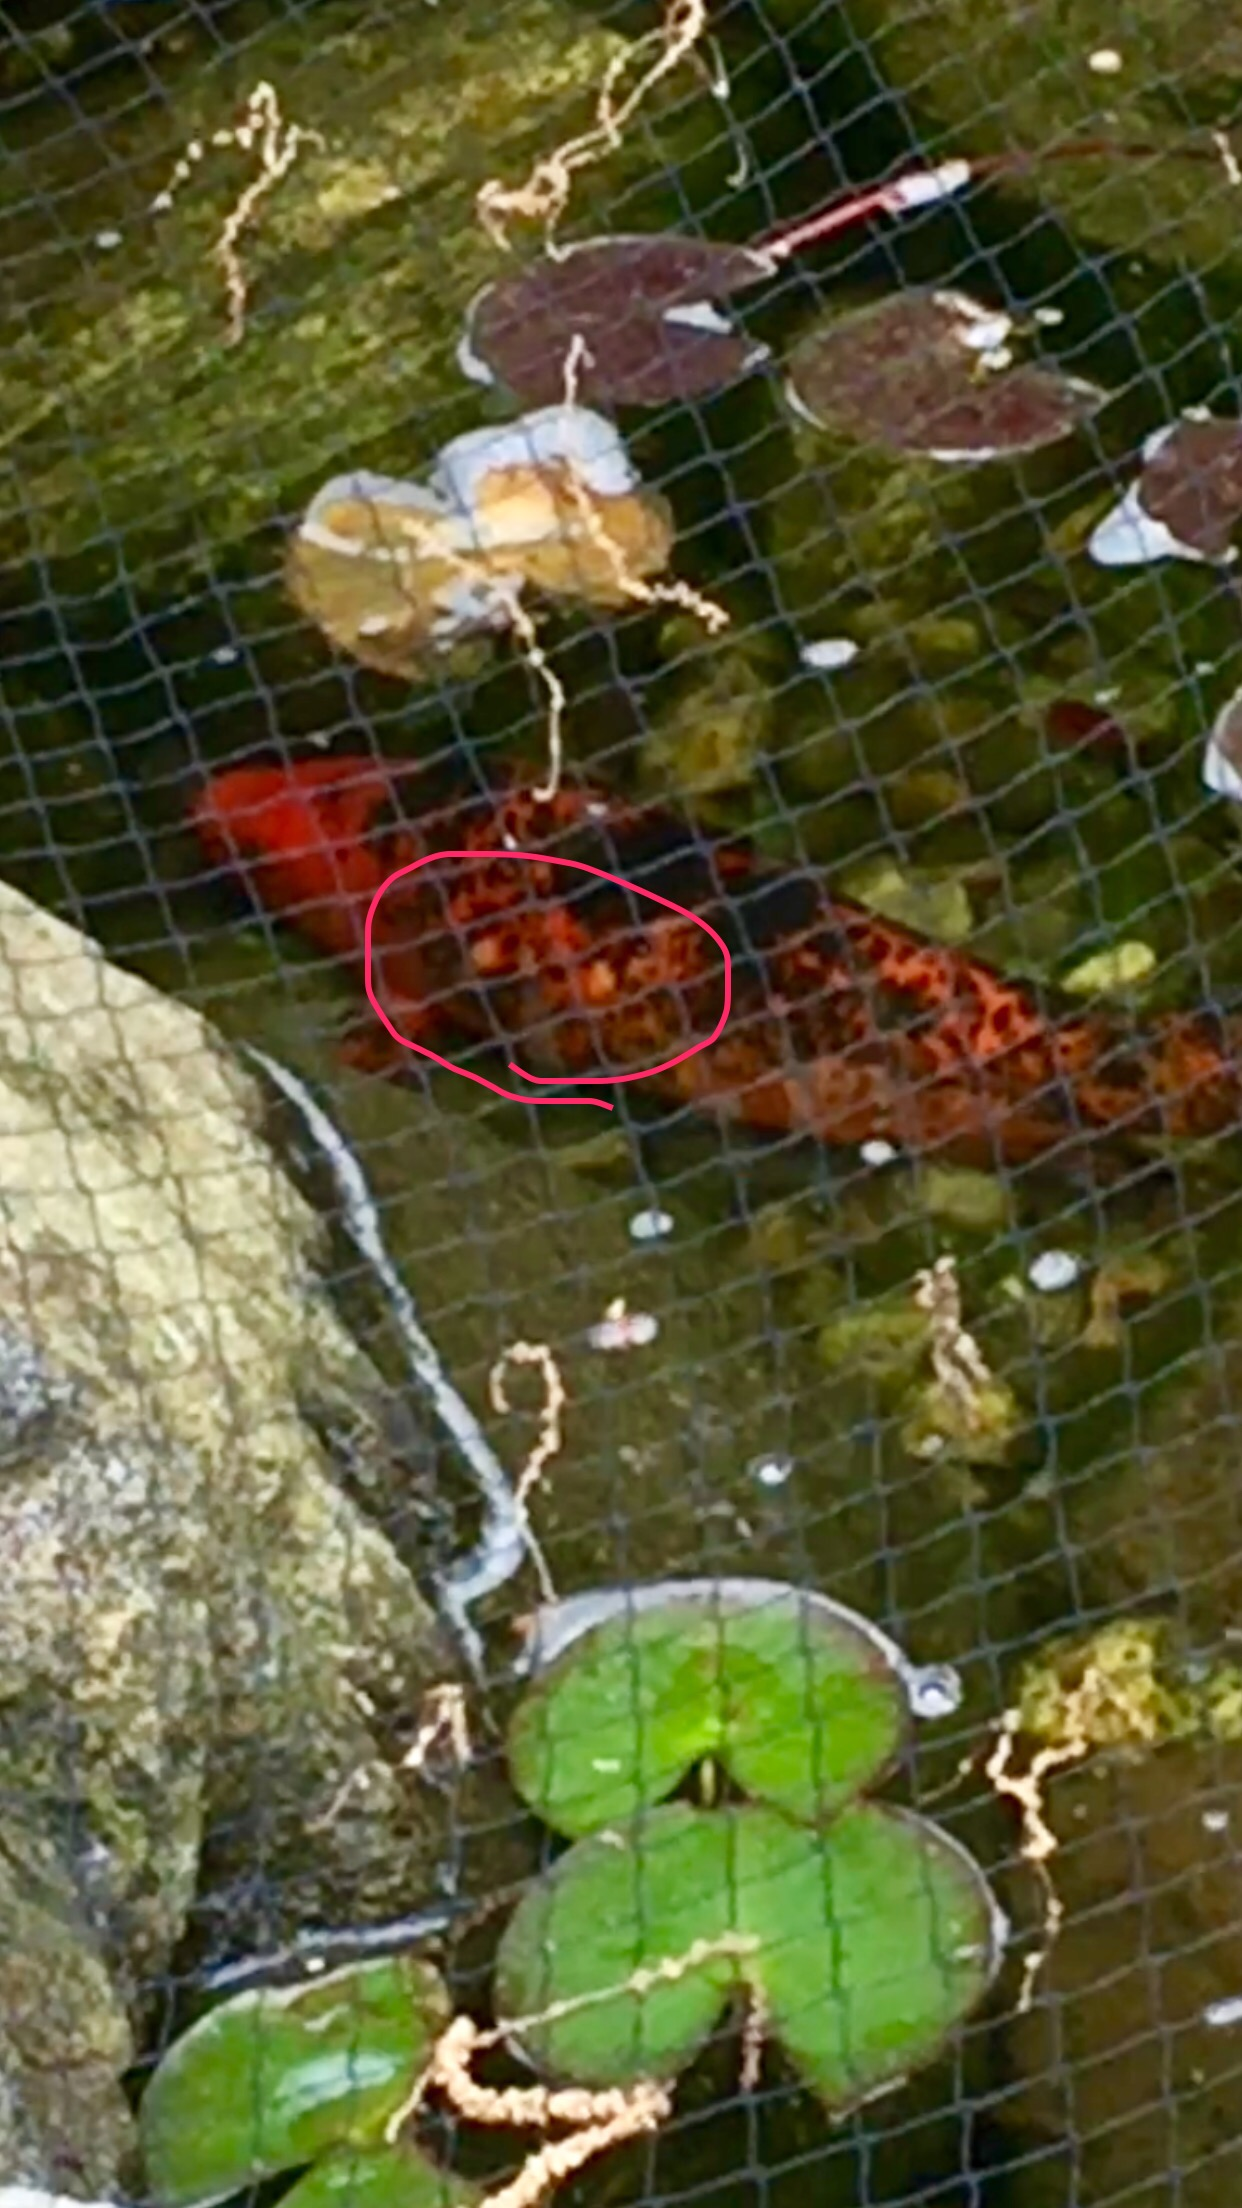 I have an aquascape eco pond with 4 koi that holds approximately